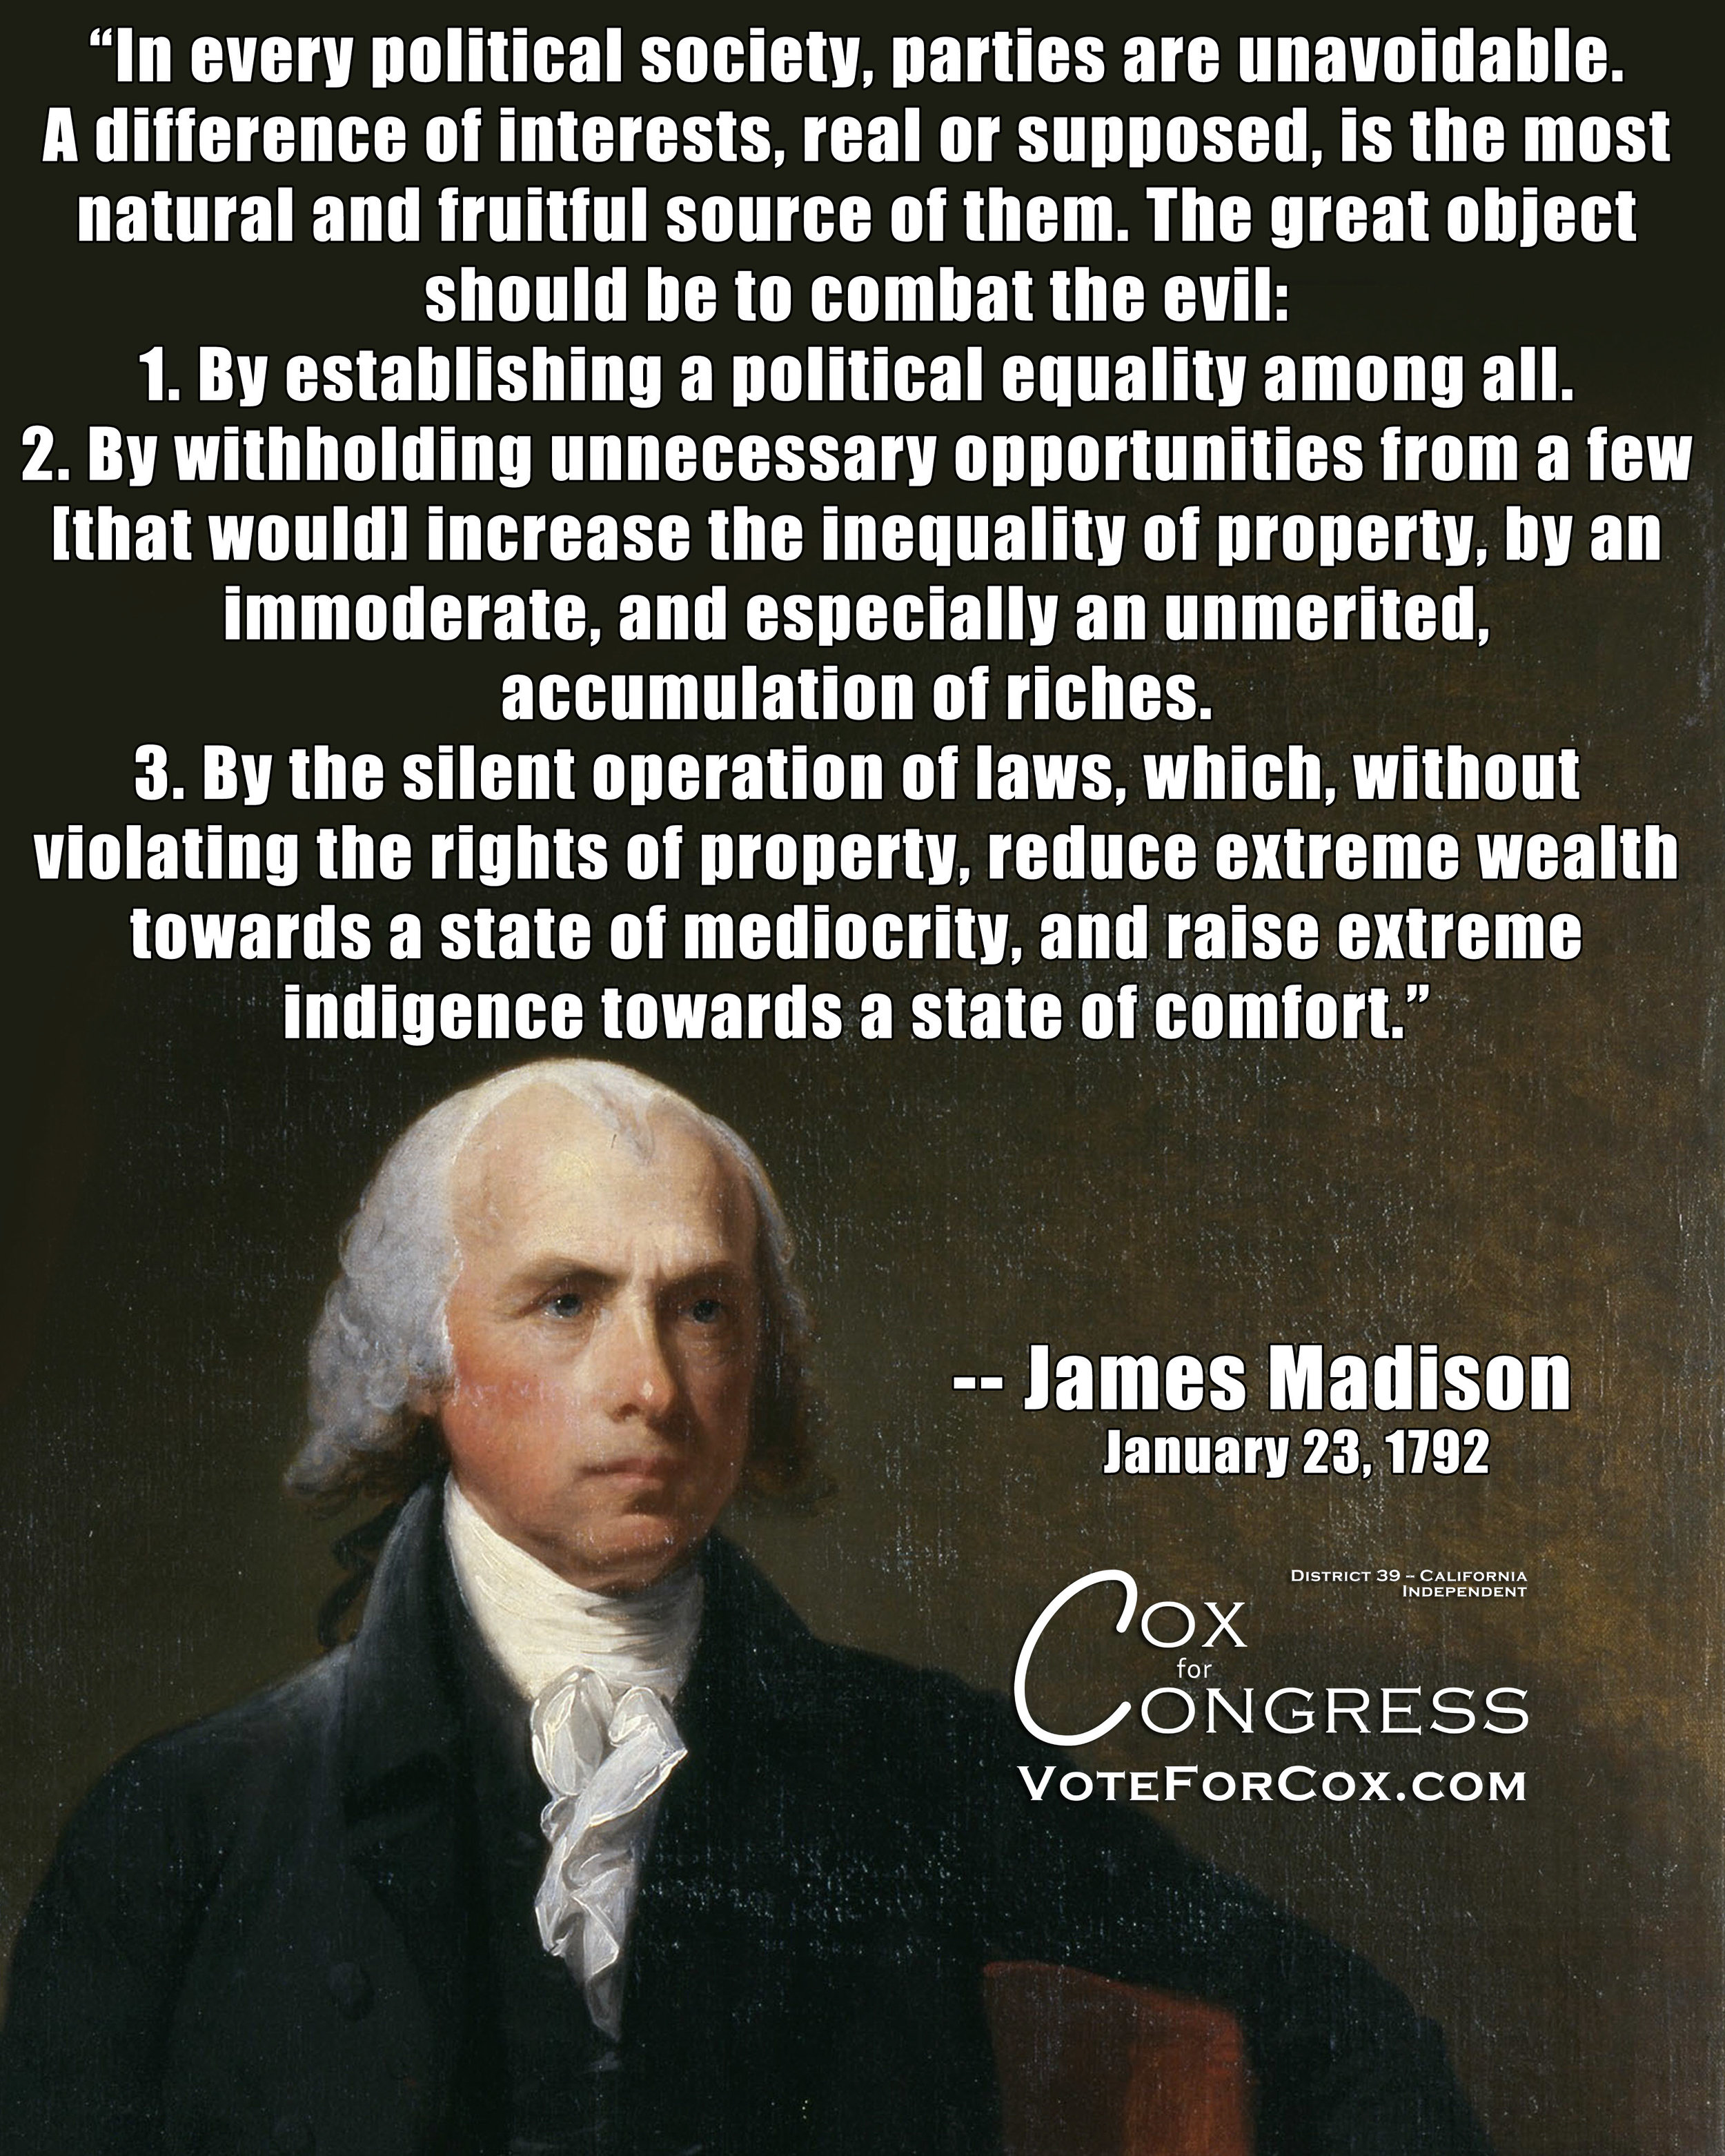 James Madison on the problem with political parties.